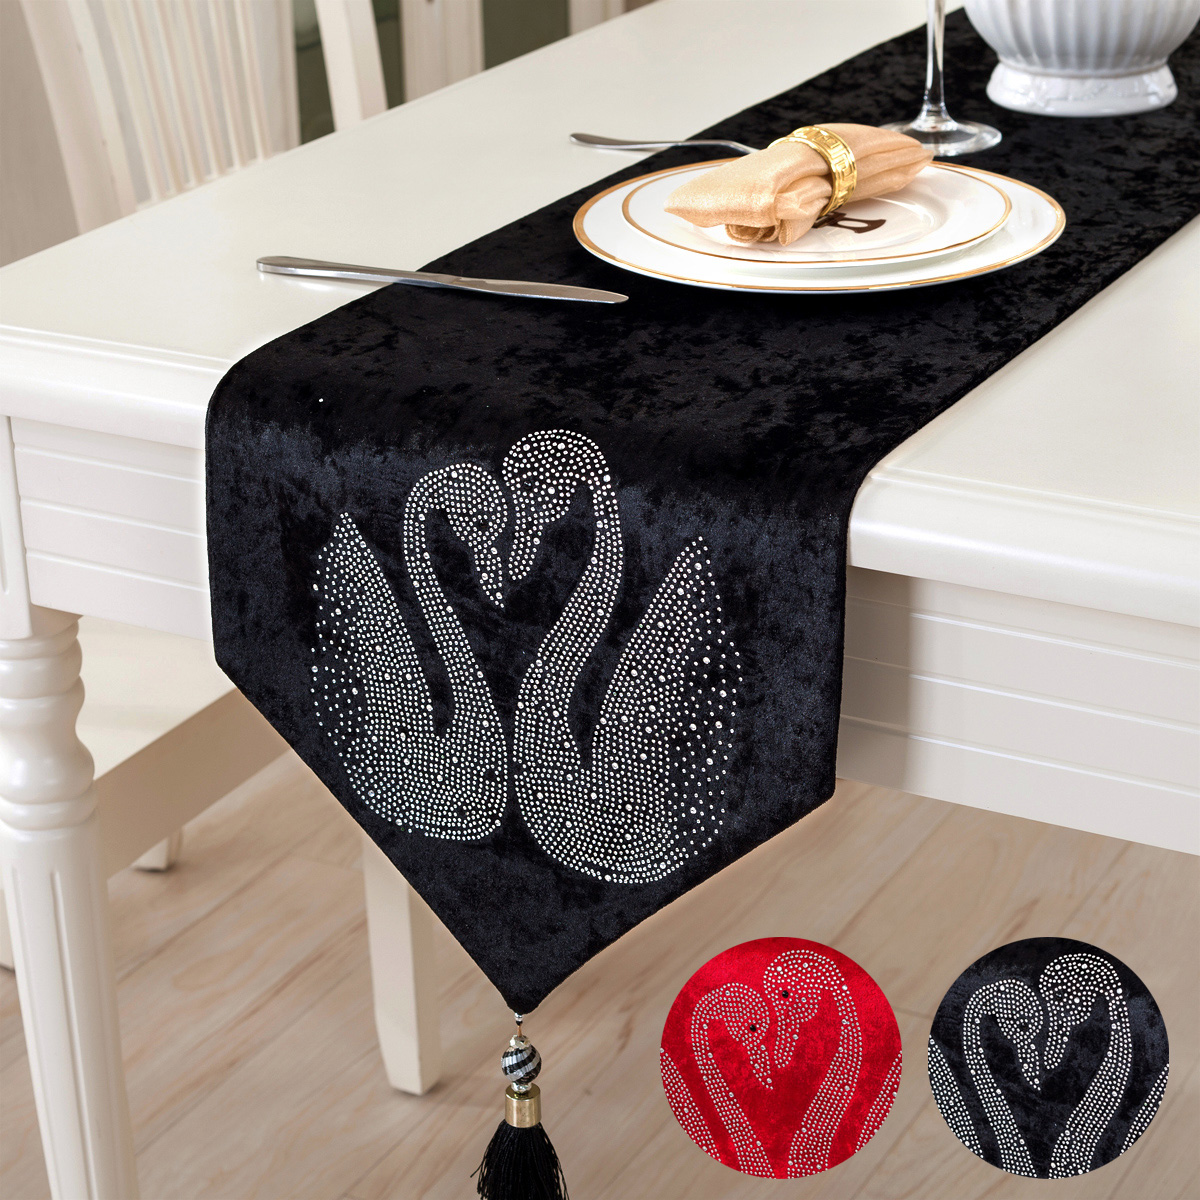 European Style Dining Table Cloth Luxury Black Swan Table Runner Red  Wedding Decorative Table Cloth In Table Runners From Home U0026 Garden On  Aliexpress.com ...